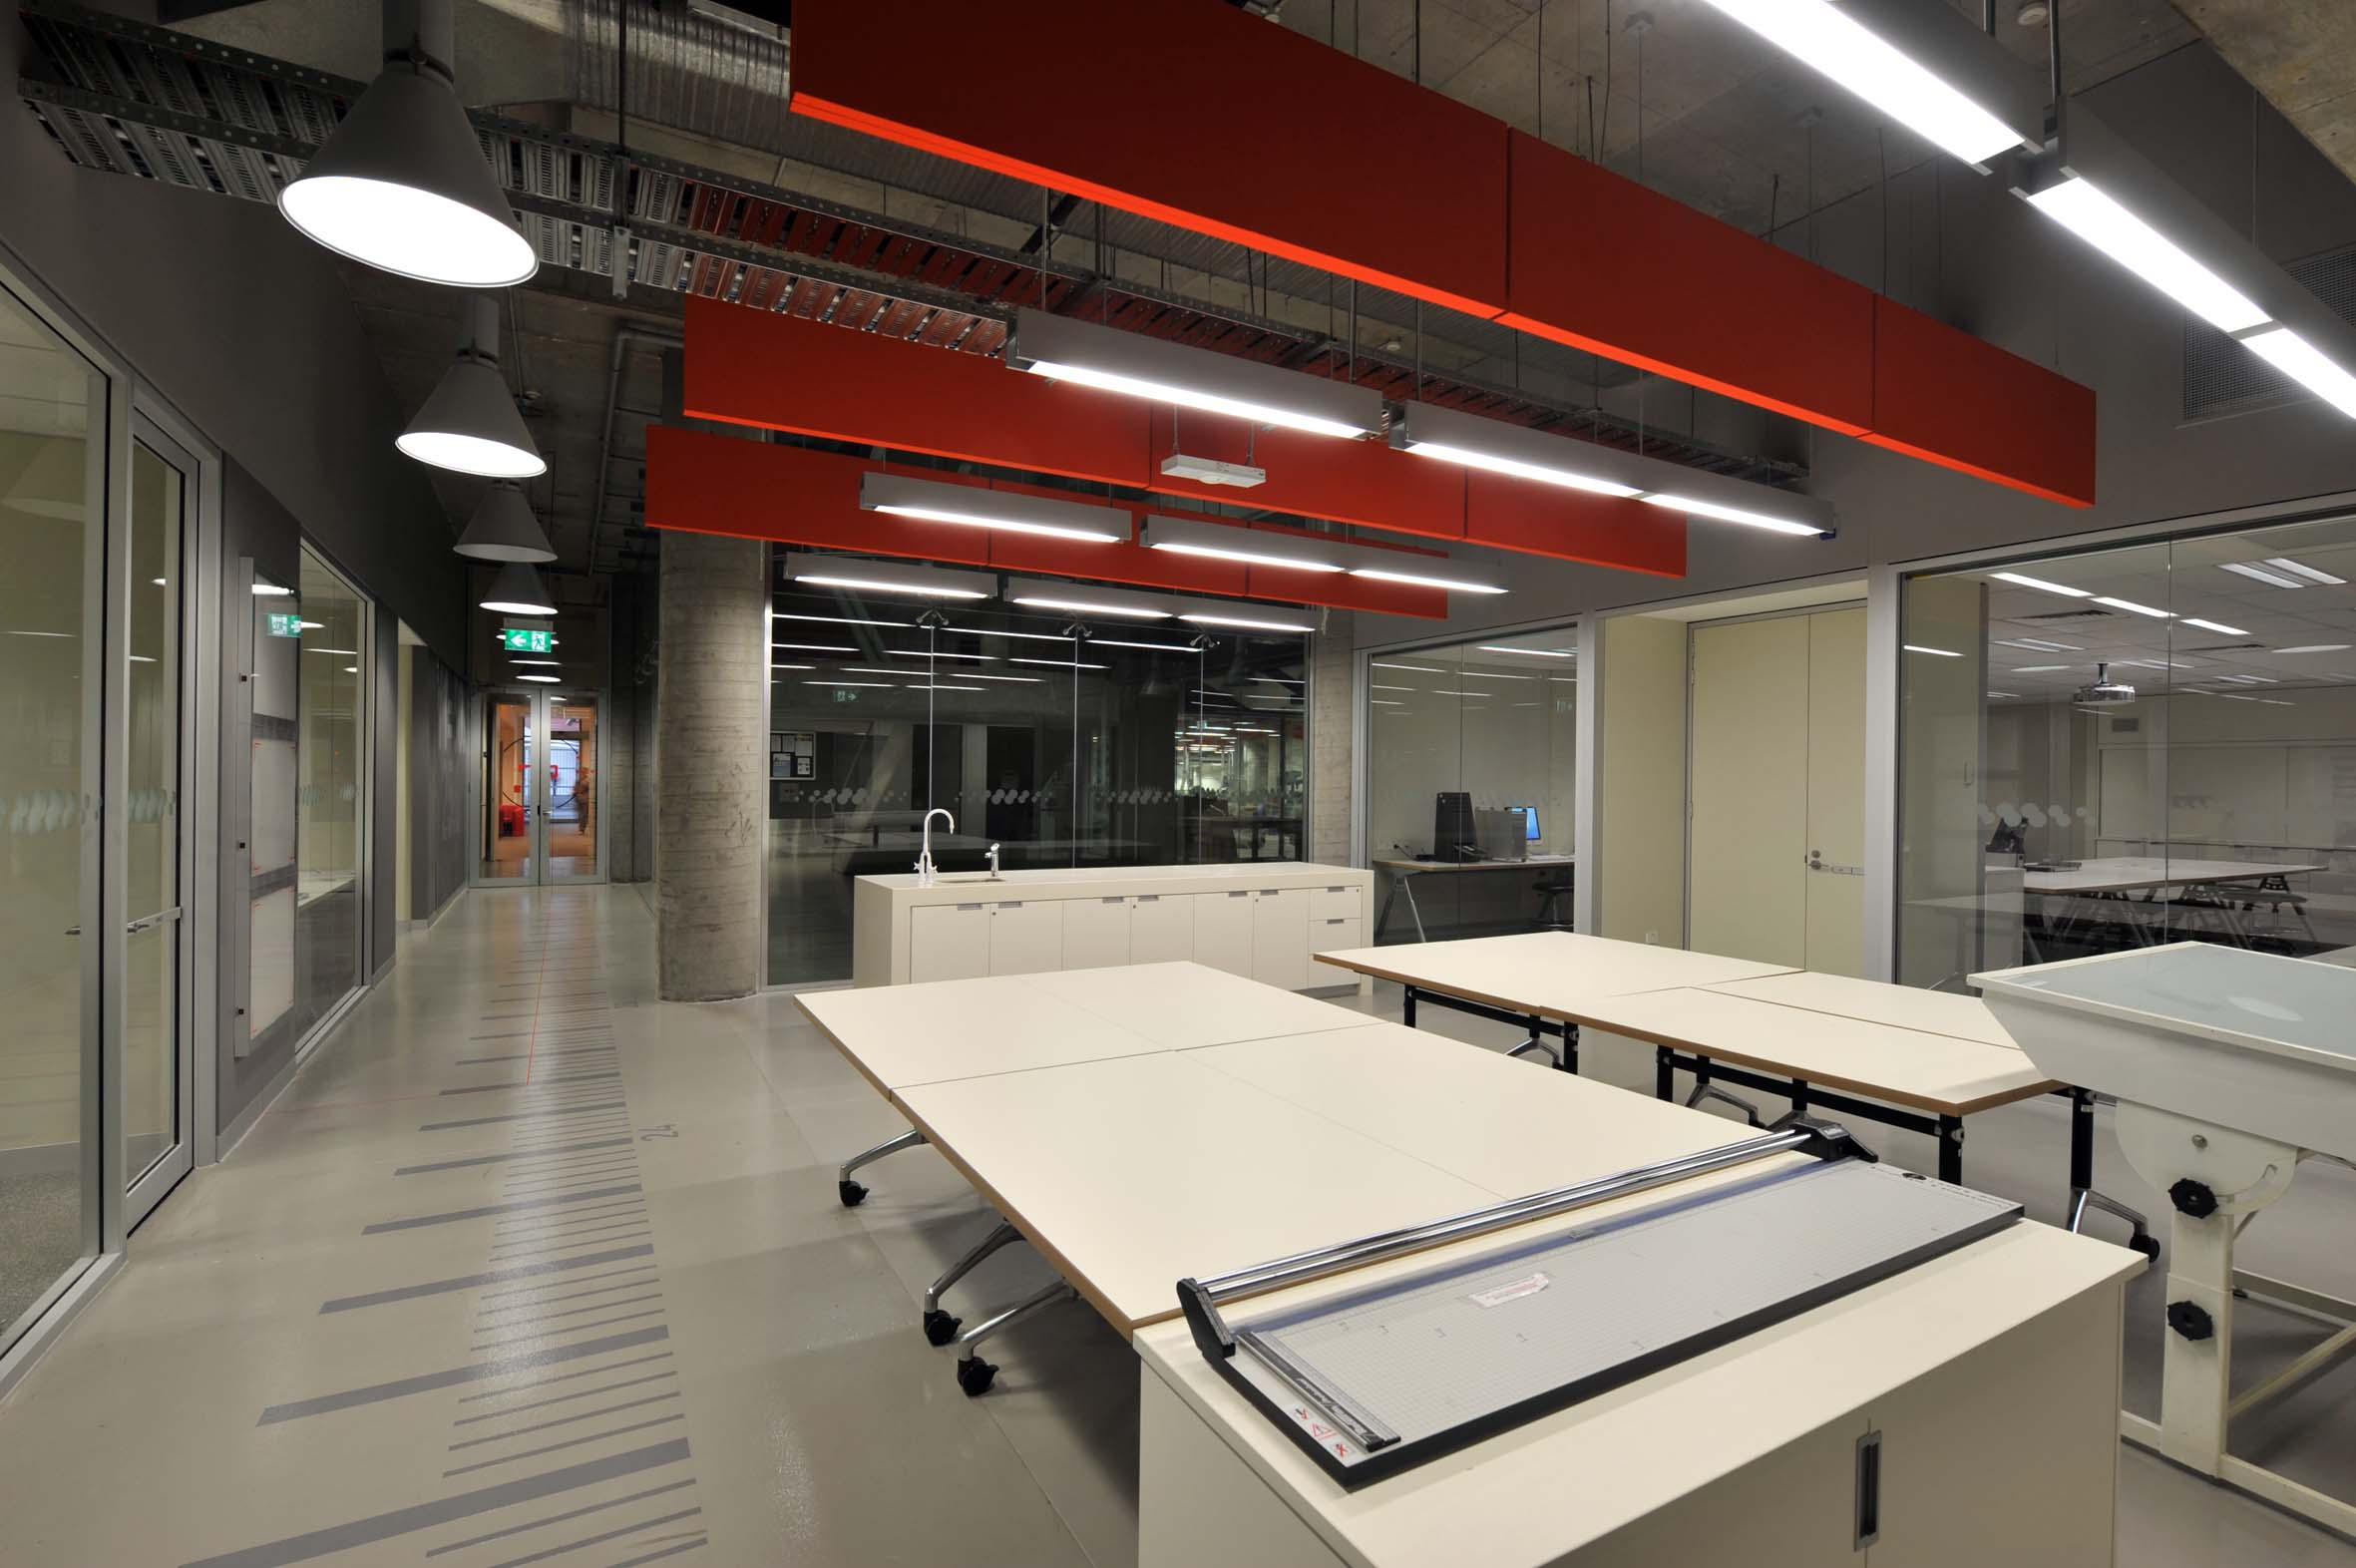 UTS Building 6 DAB Fabrication and Photographic Studio Interior Architecture – Gardner Wetherill GW 1